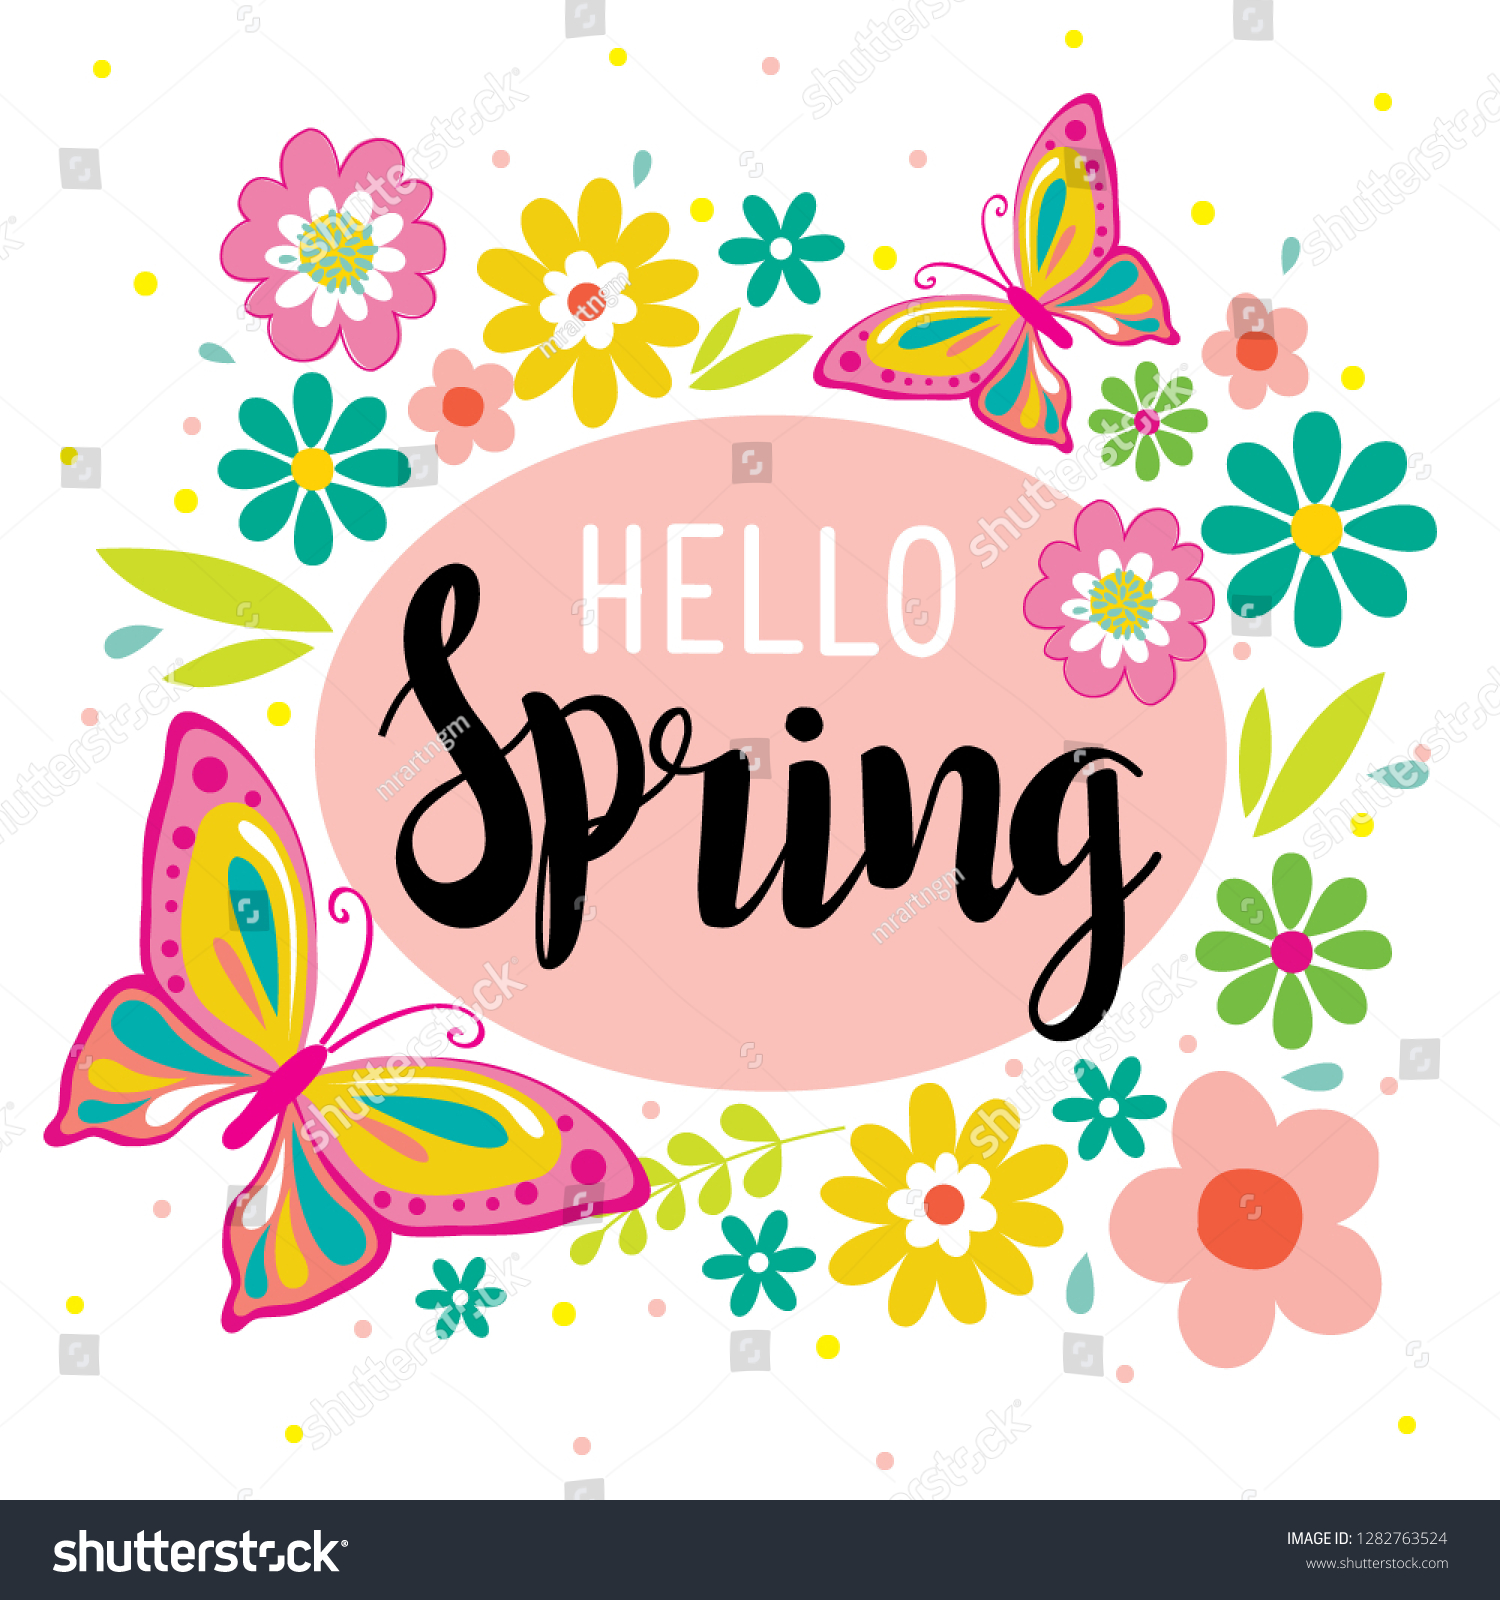 Hello Spring Cute Flowers Butterfly Vector Stock Vector Royalty Free 1282763524